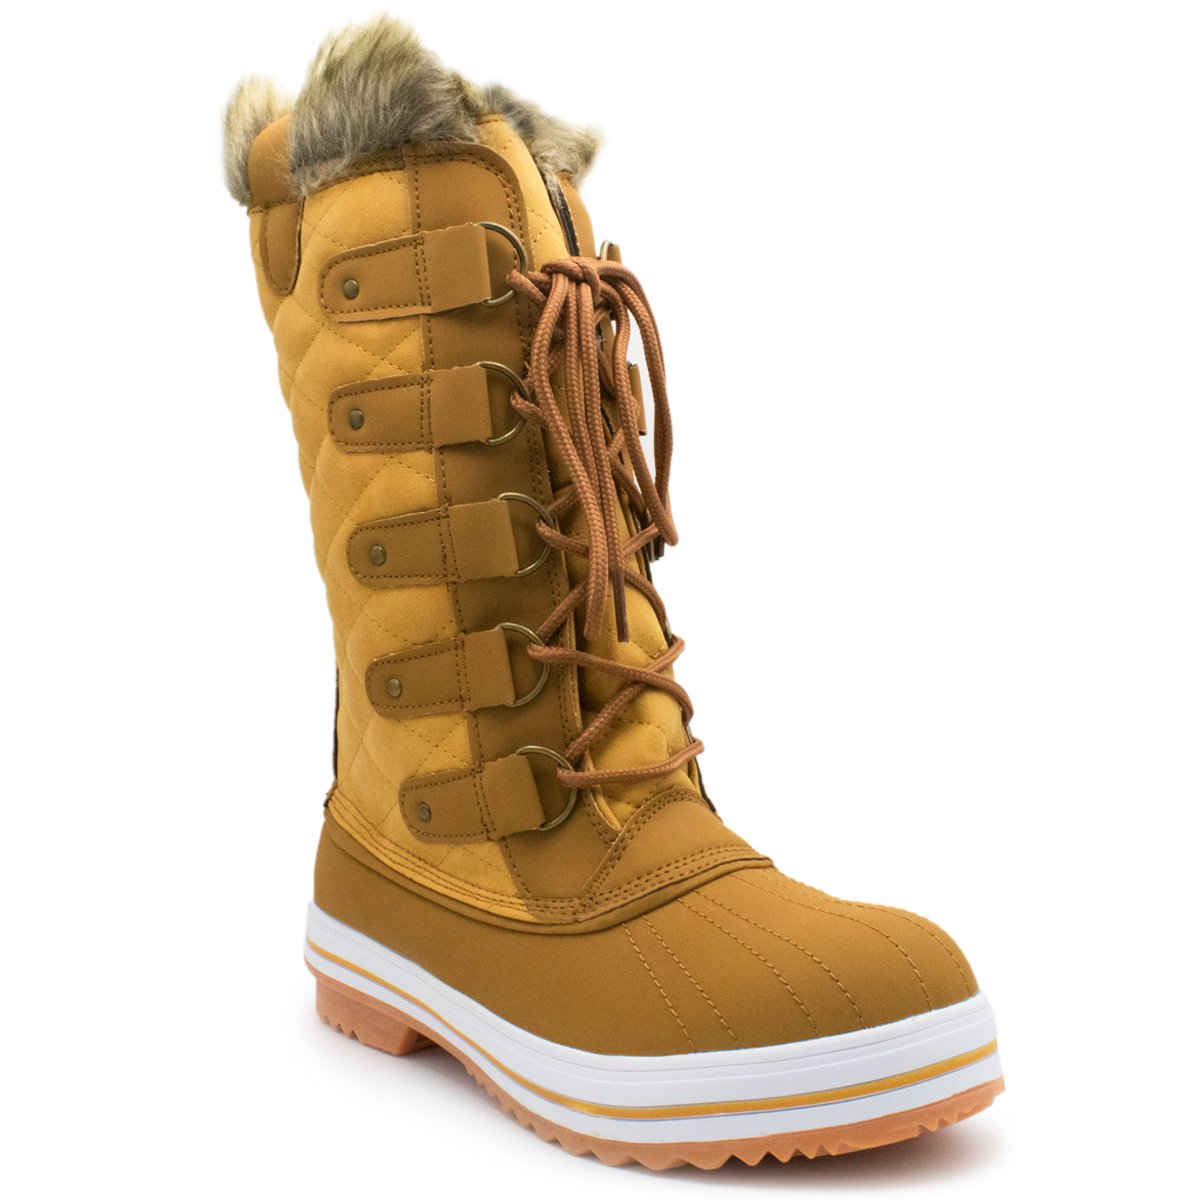 Premier Standard Women's Swiss Lace Up Quilted Mid Calf Winter Snow Boots B078B8TX2V 5.5 B(M) US|Premier Tan